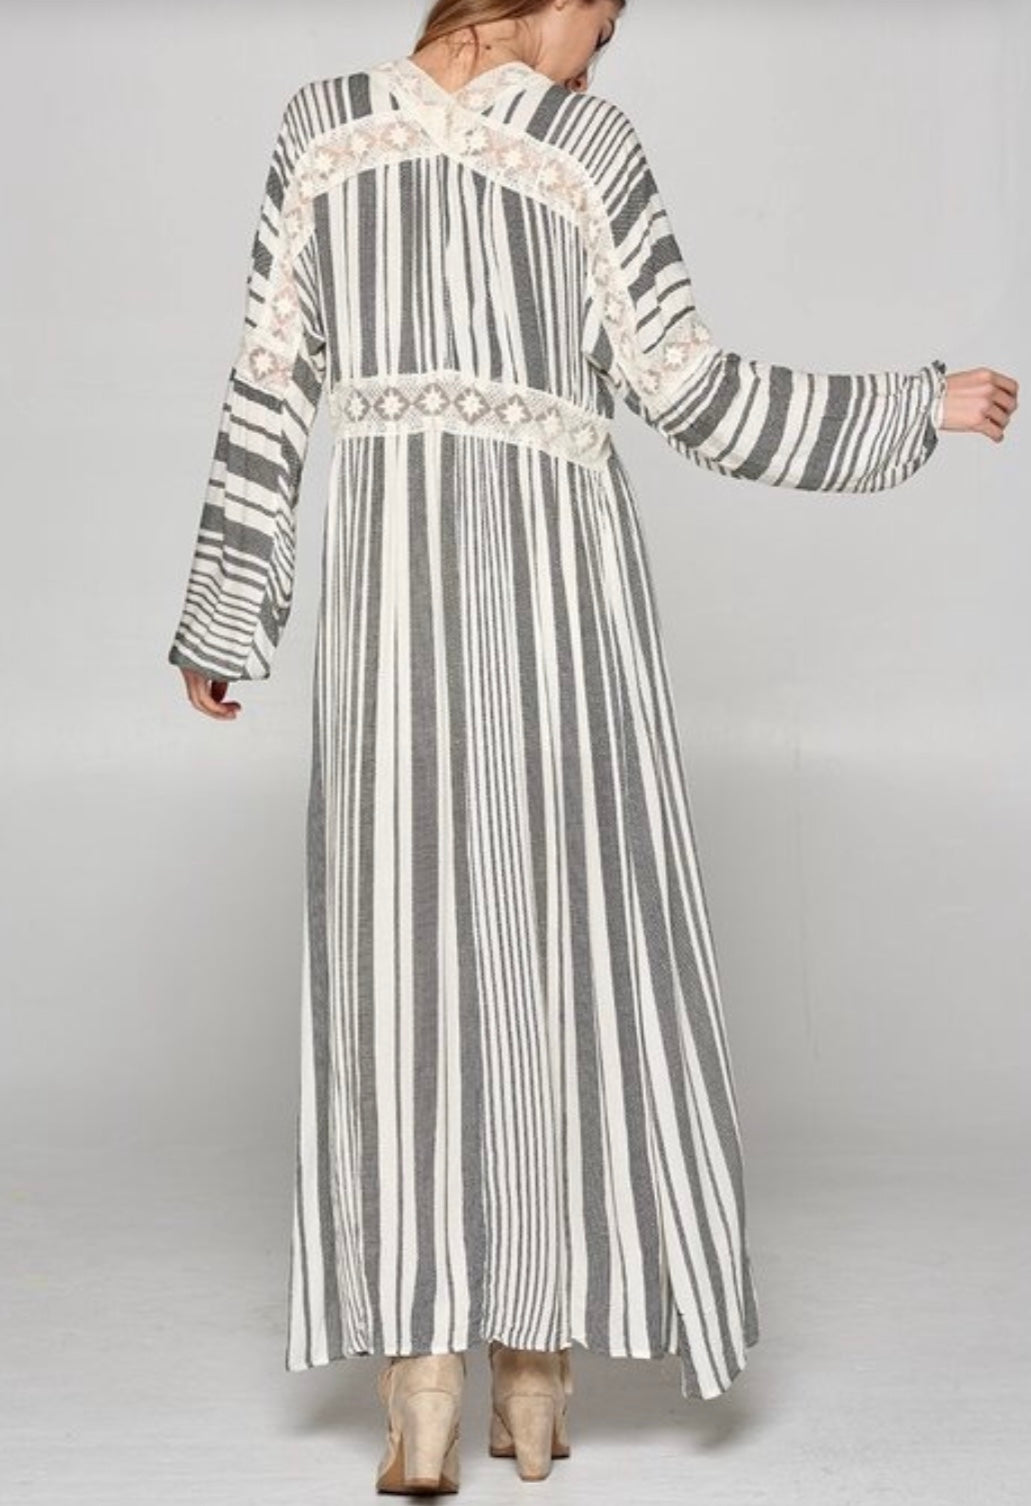 NEW! Striped Maxi Cardi Open Abaya